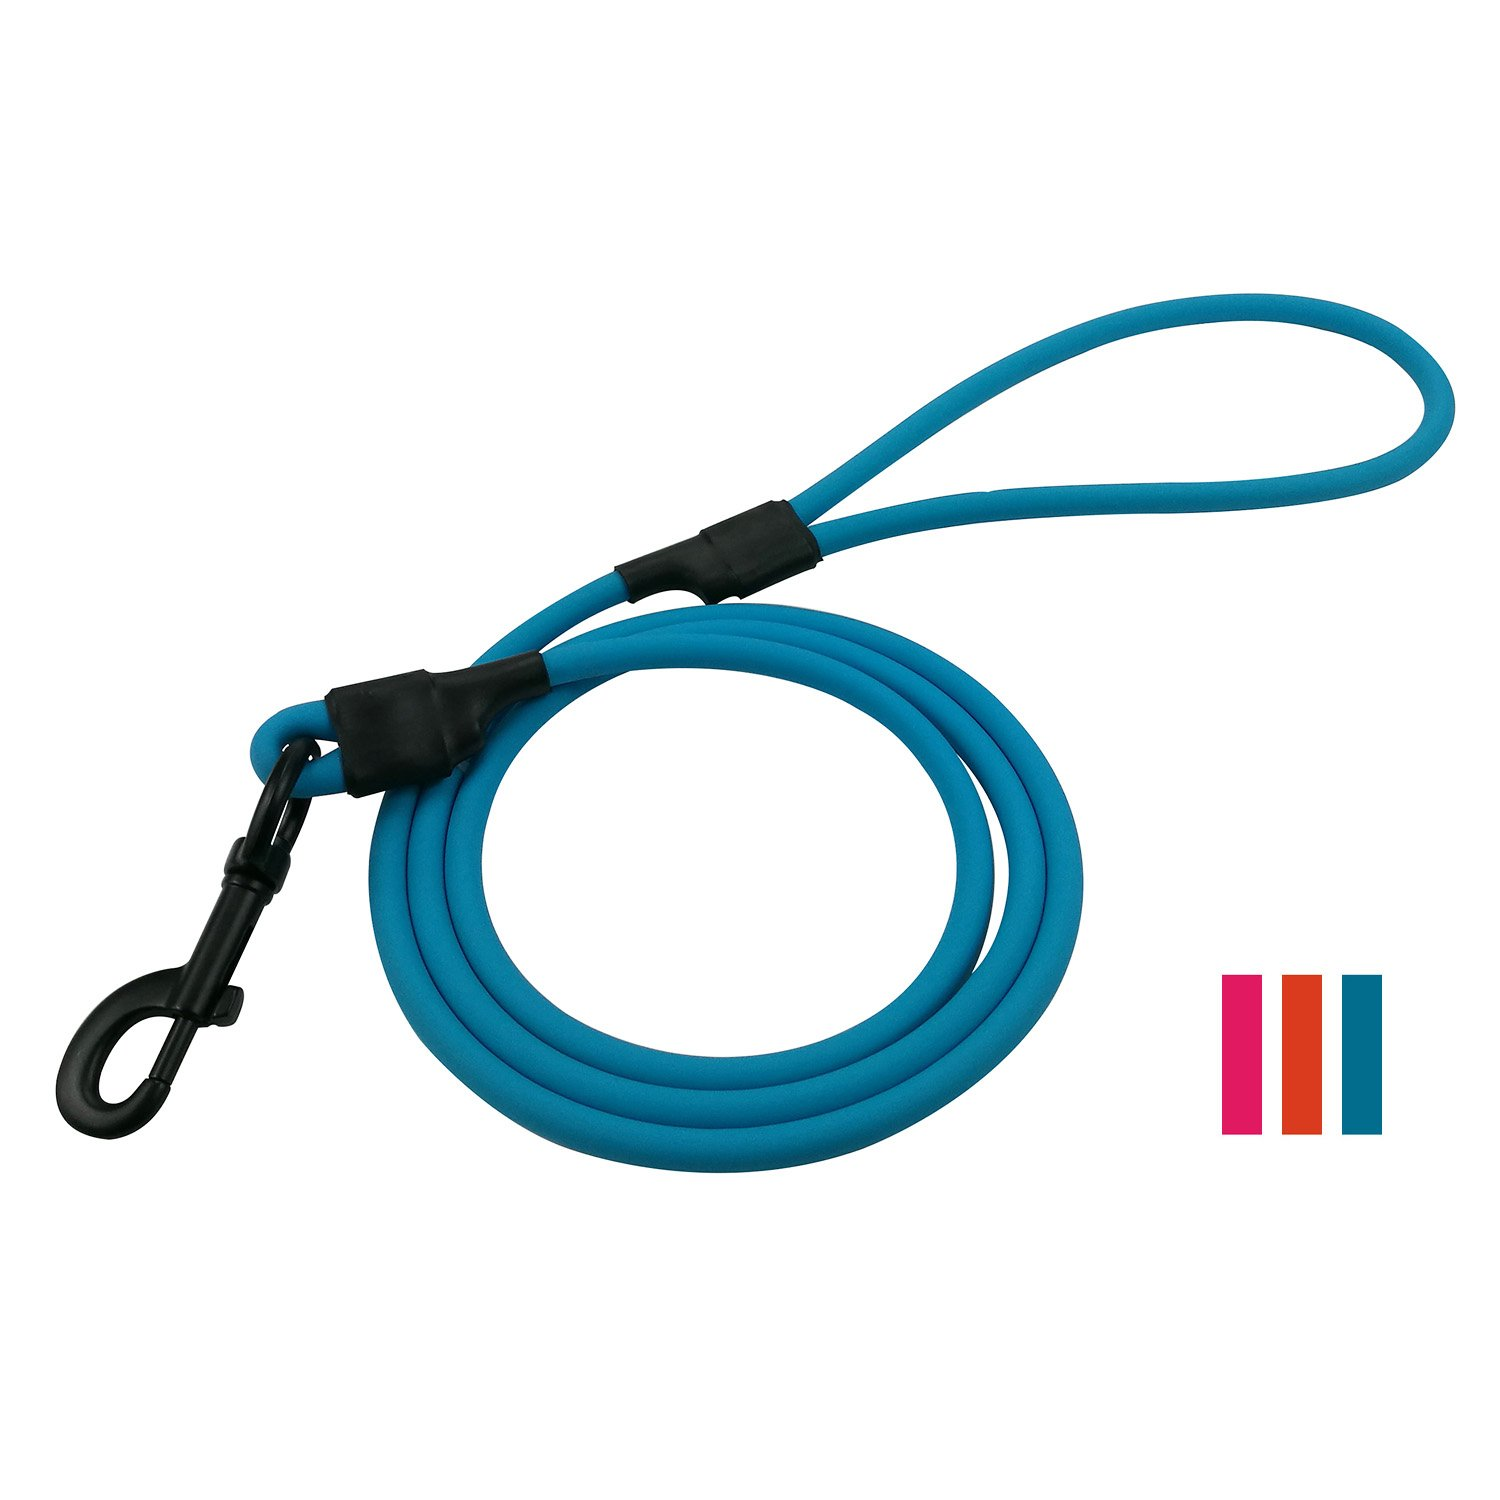 bluee 5 feet bluee 5 feet SACRONS-Waterproof Dog Leash PVE Contains High Strength Nylon Materials Wear-Resistant and Dirty Easy to Clean Excellent for Outdoors & Dog Training(Small, Medium, Large Dogs)